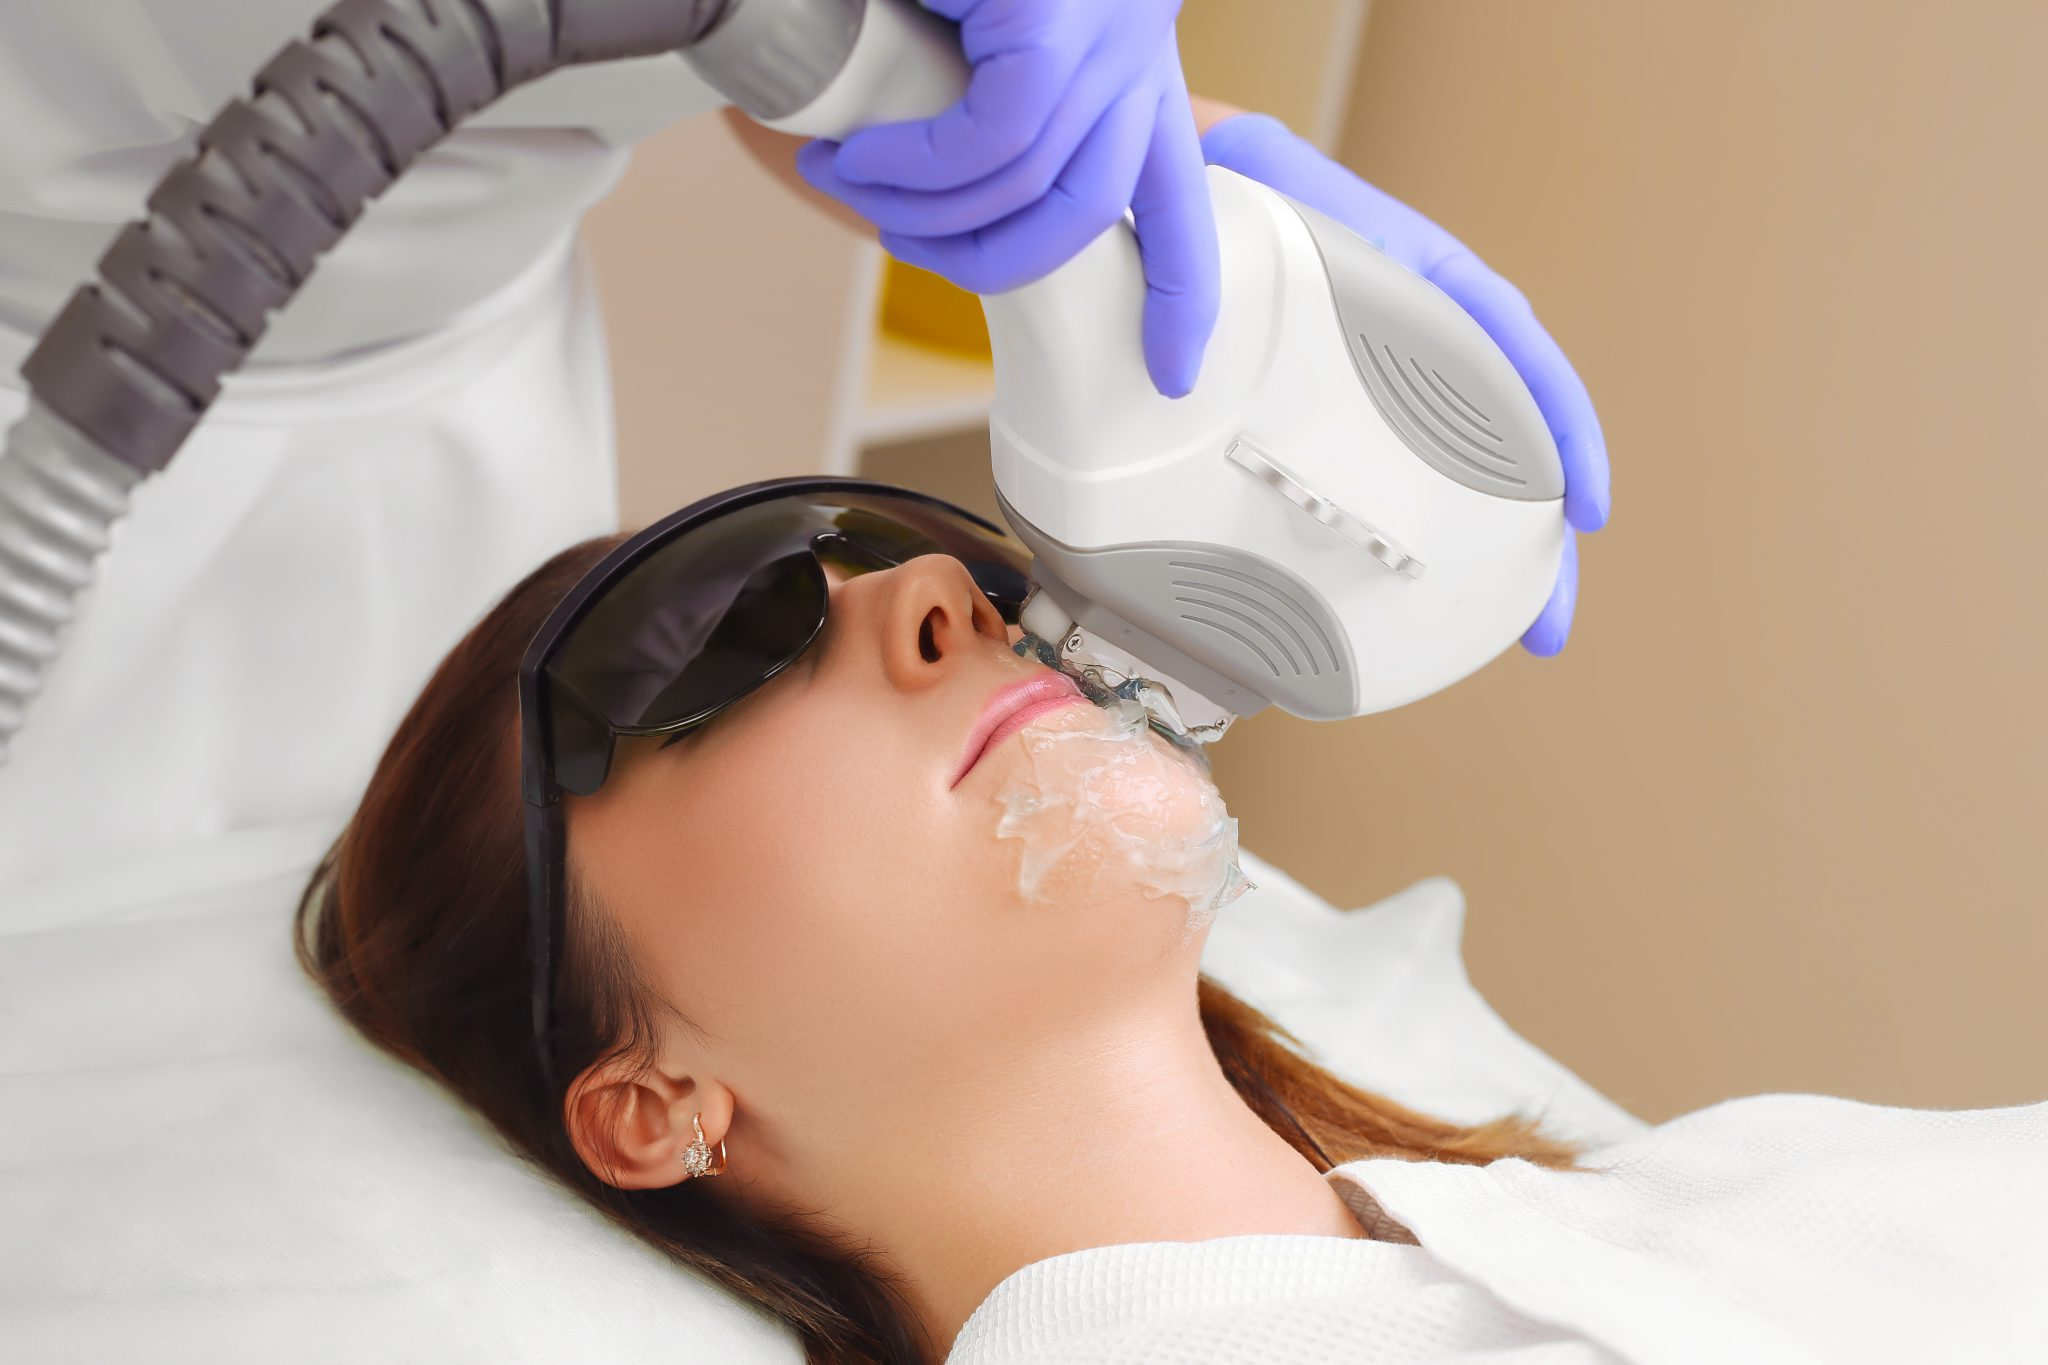 Fast Track Laser Amp IPL Course Package Academy Of Beauty